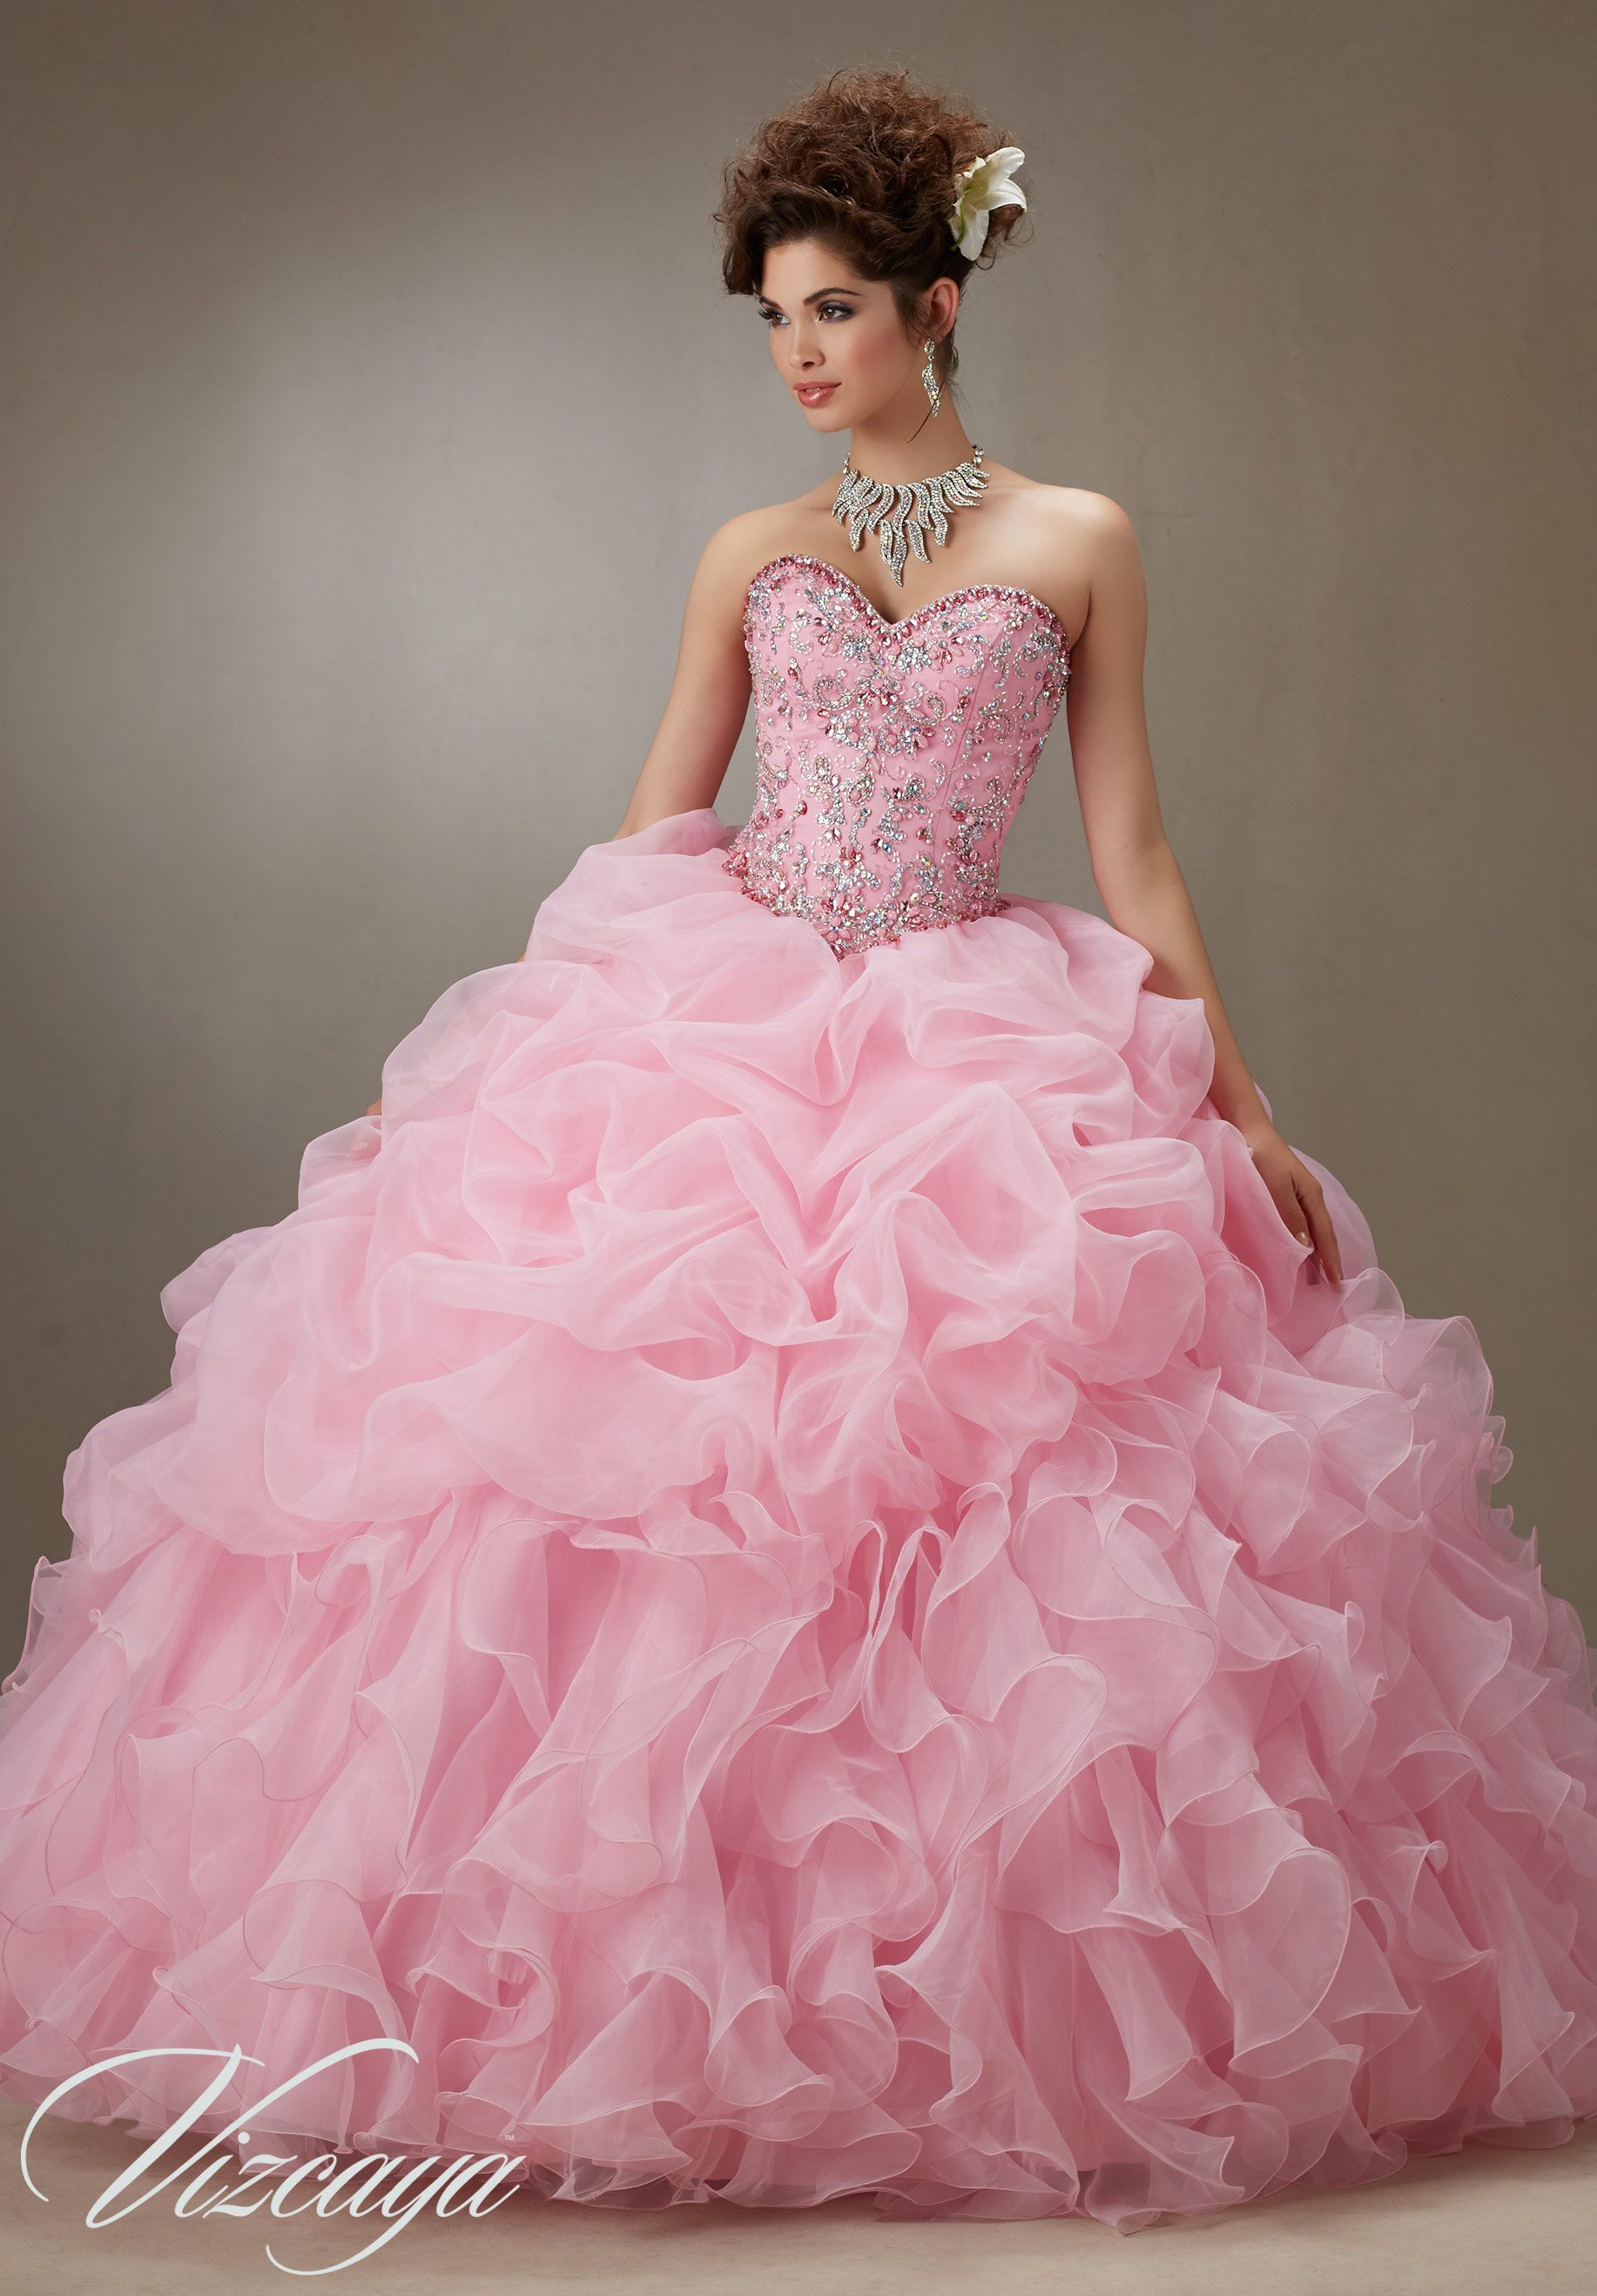 Quinceanera dresses by Vizcaya Ruched Organza Skirt with Beaded ...